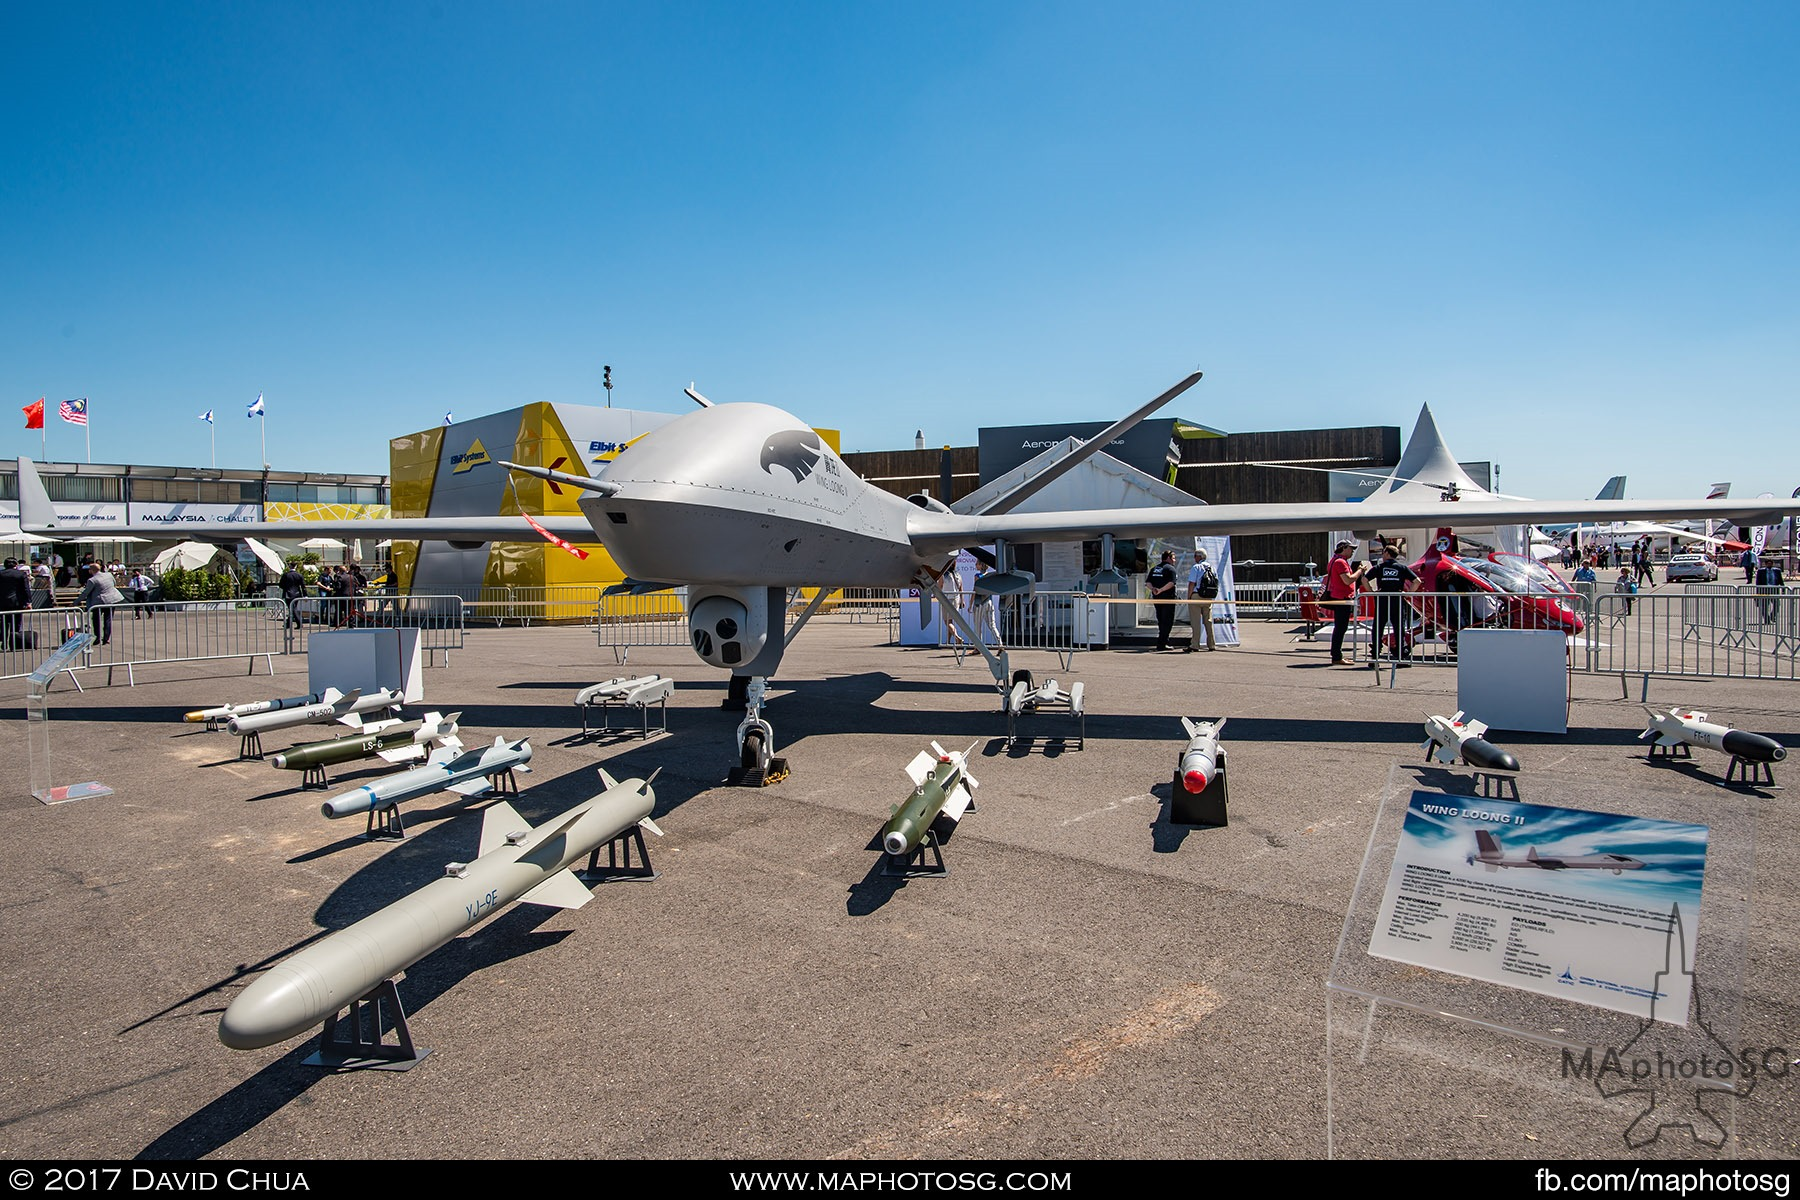 30. Making its first appearance outside of China is a full scale mock up of the Chengdu Wing Loong II UAV, displayed with an array of missiles and bombs. Externally, it looks like the MQ-9 Reaper drone that the United States uses.